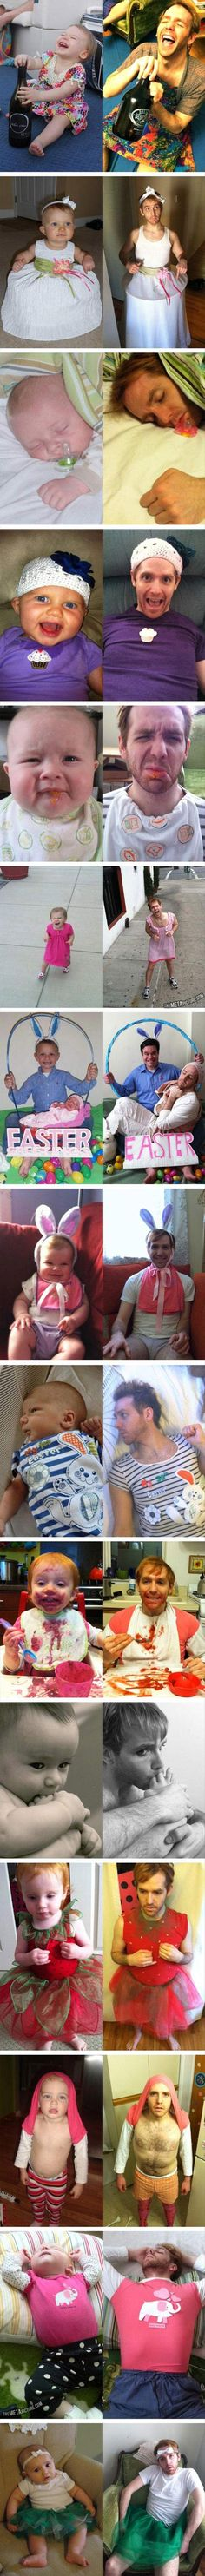 Funny Dad Copies Baby Pictures – Why did this make me laugh so much?! Haha